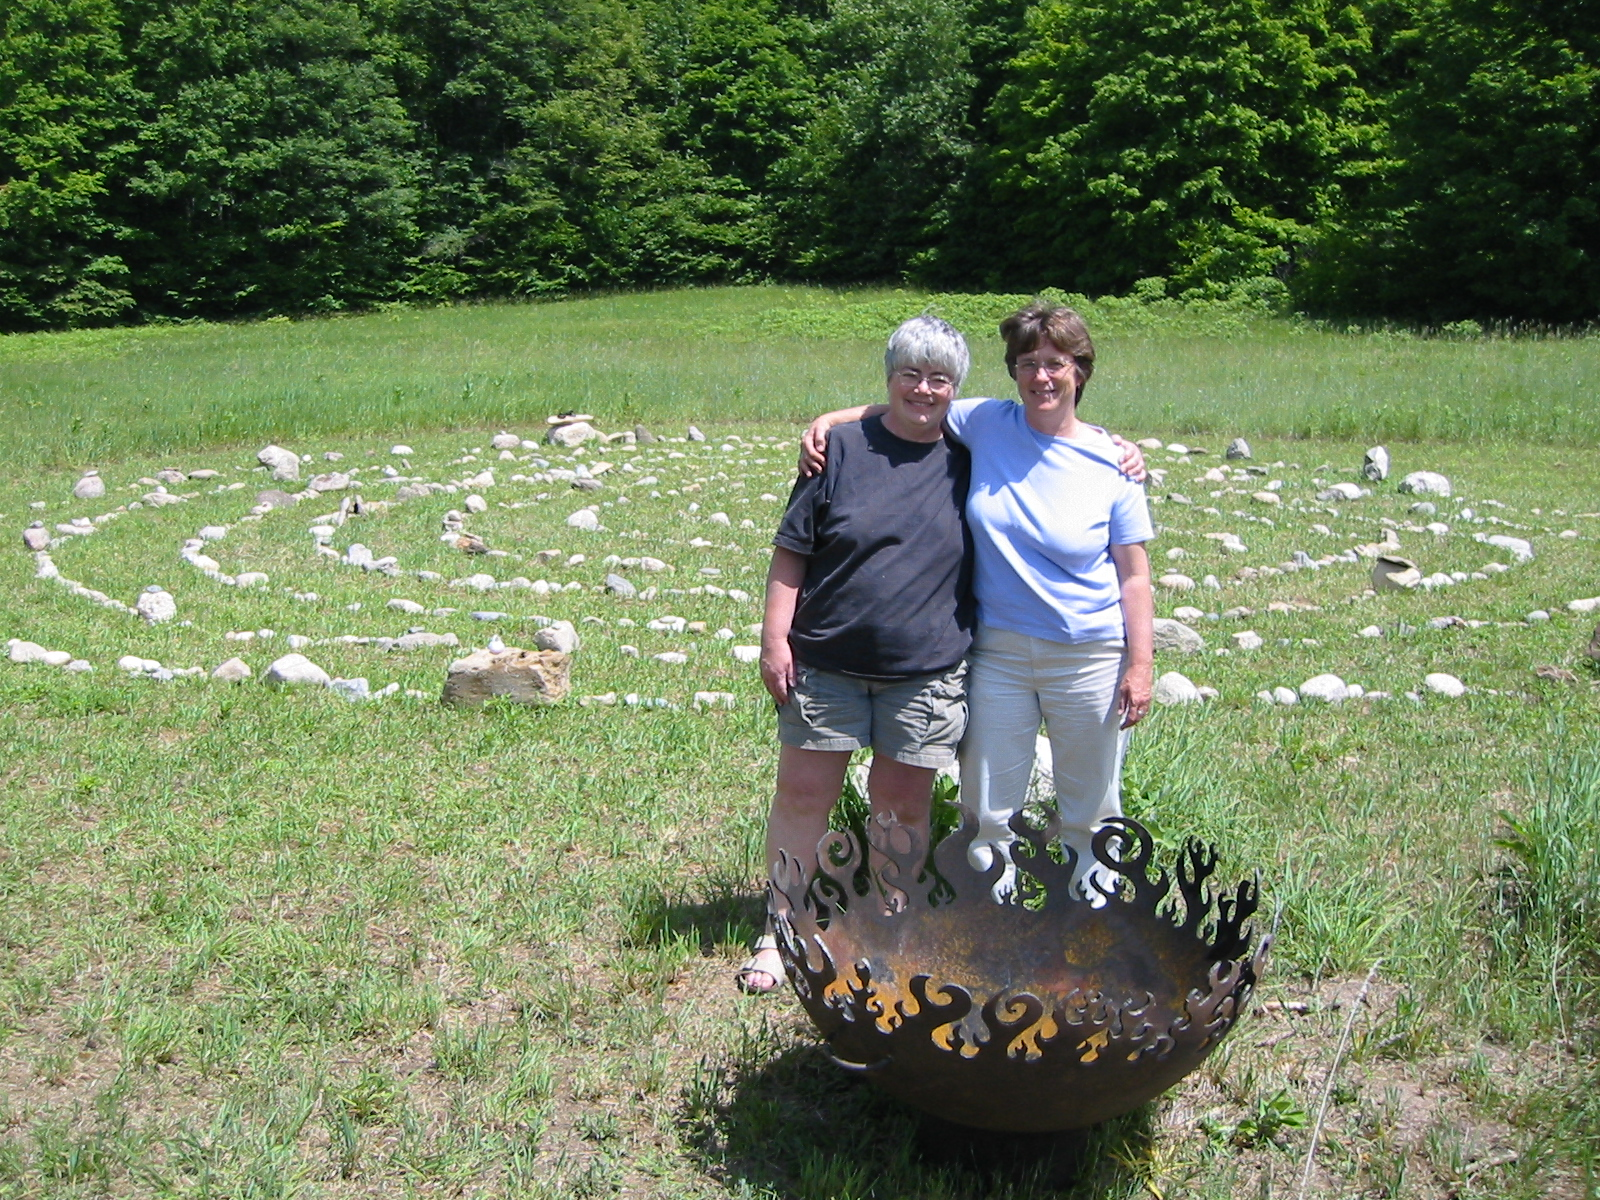 firebowl in a ring of stones for solstice